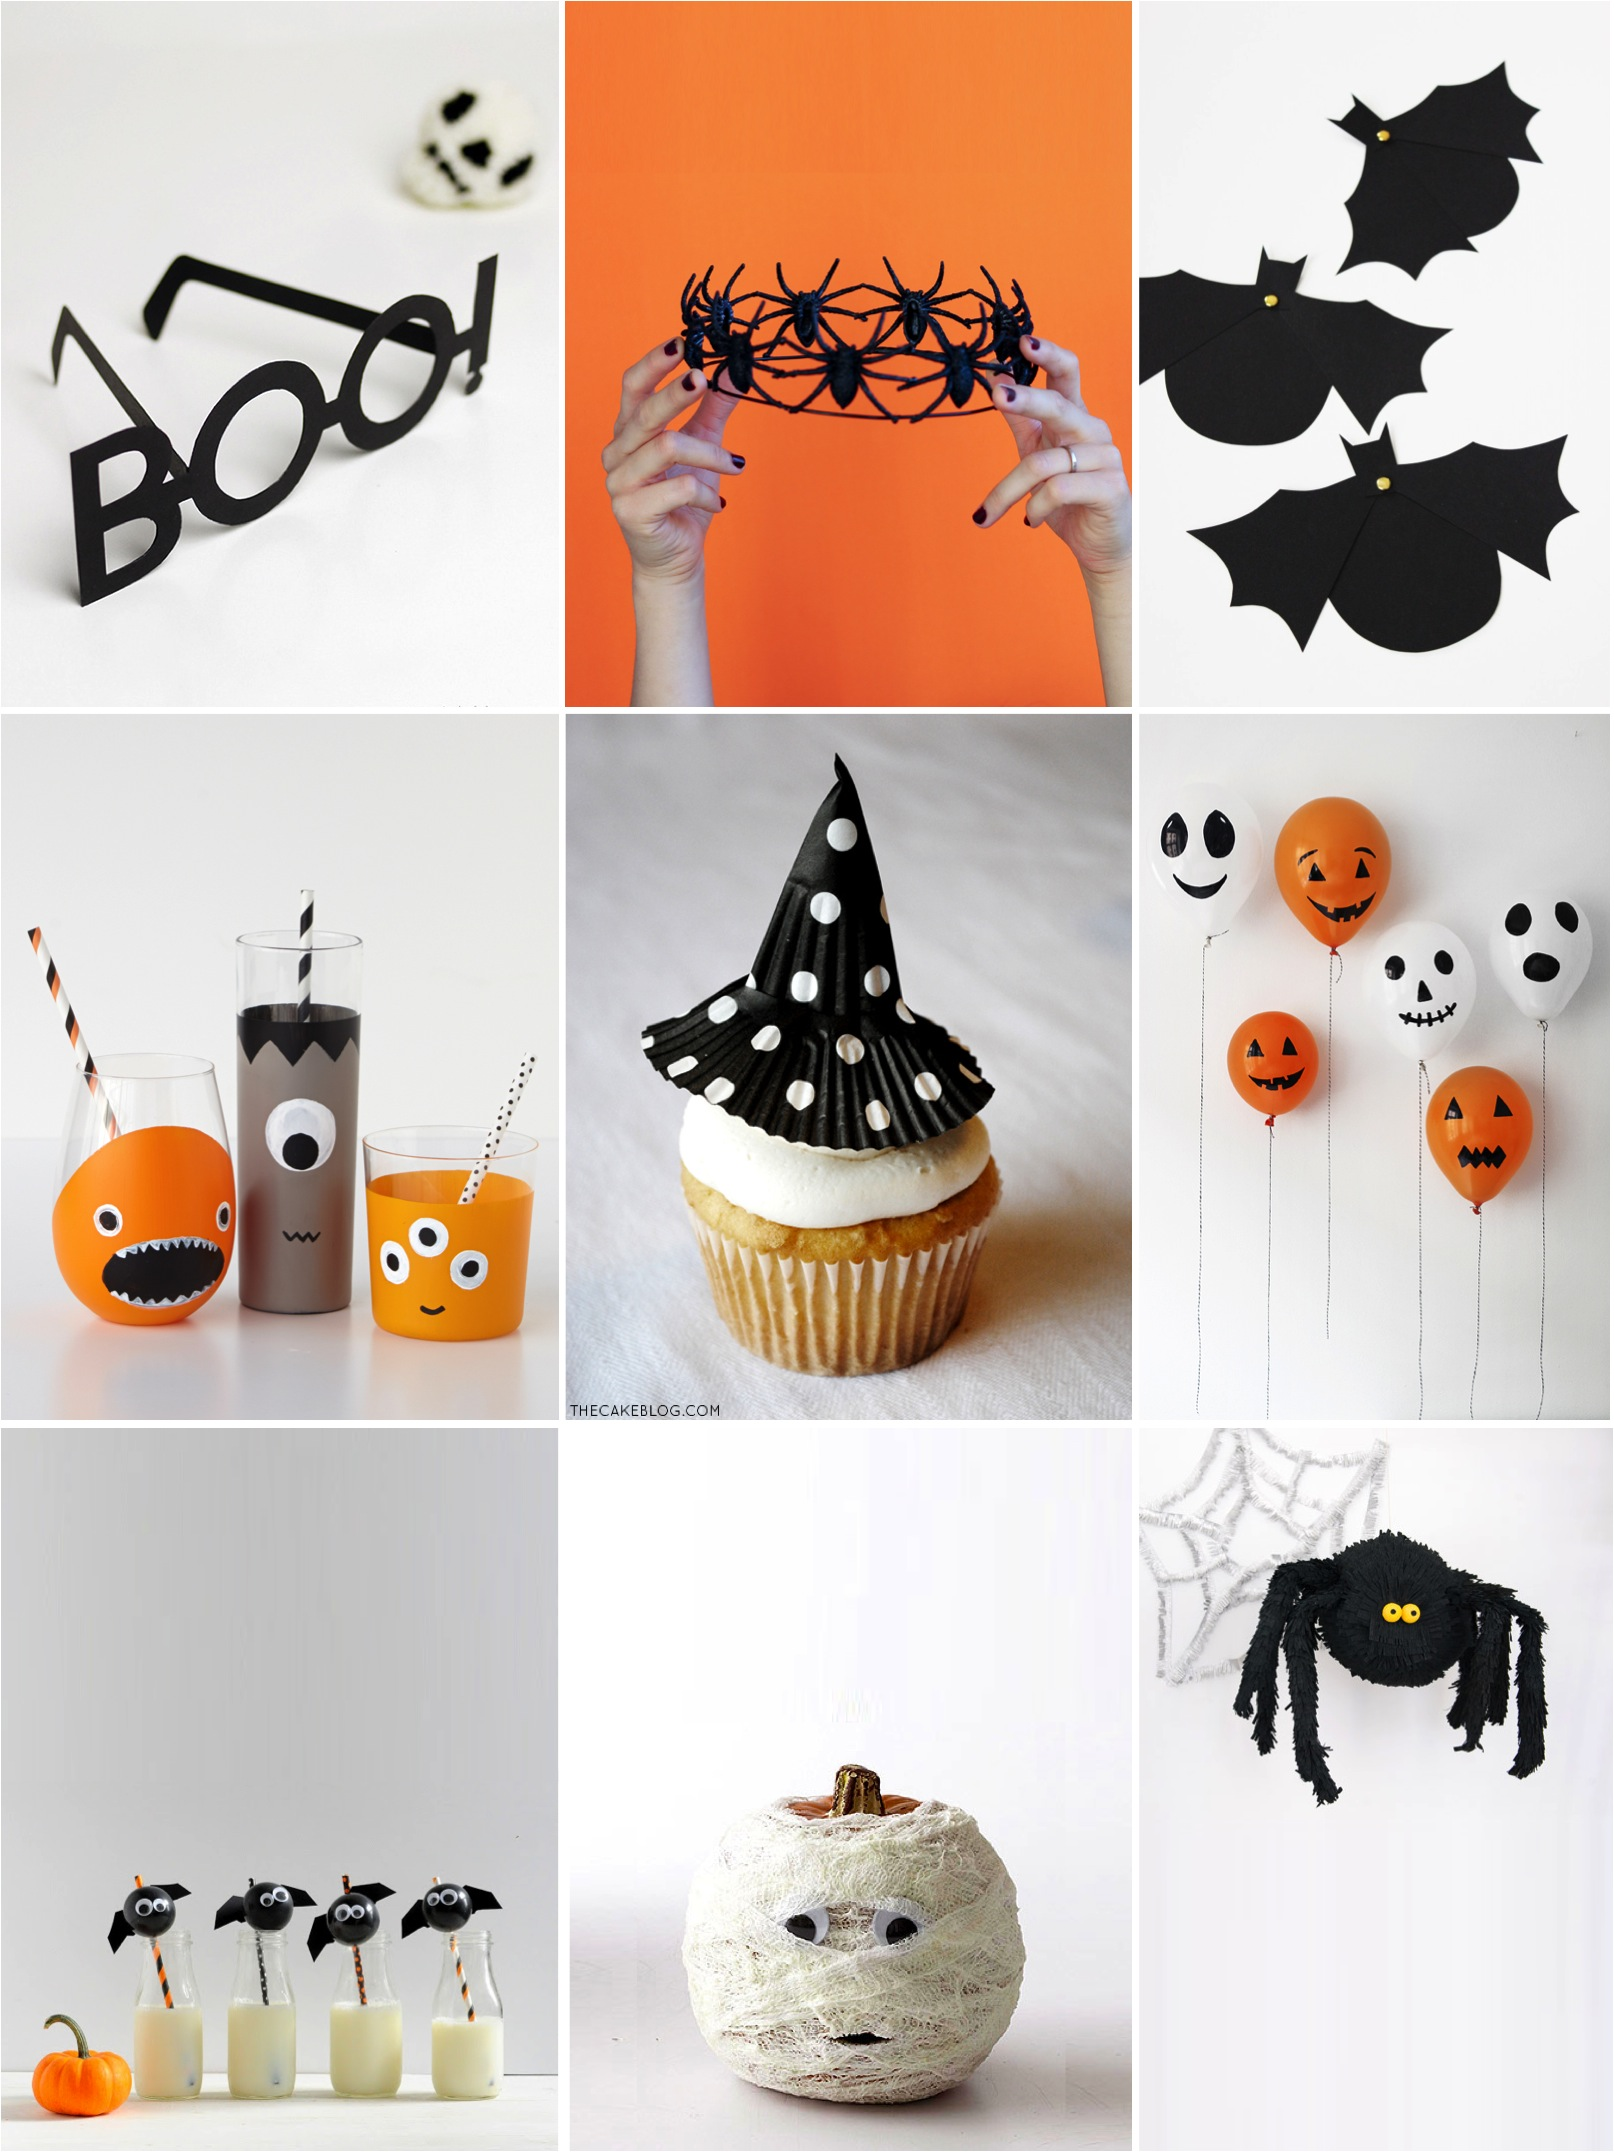 9 easy party decorations to make this halloween - Halloween Party Decoration